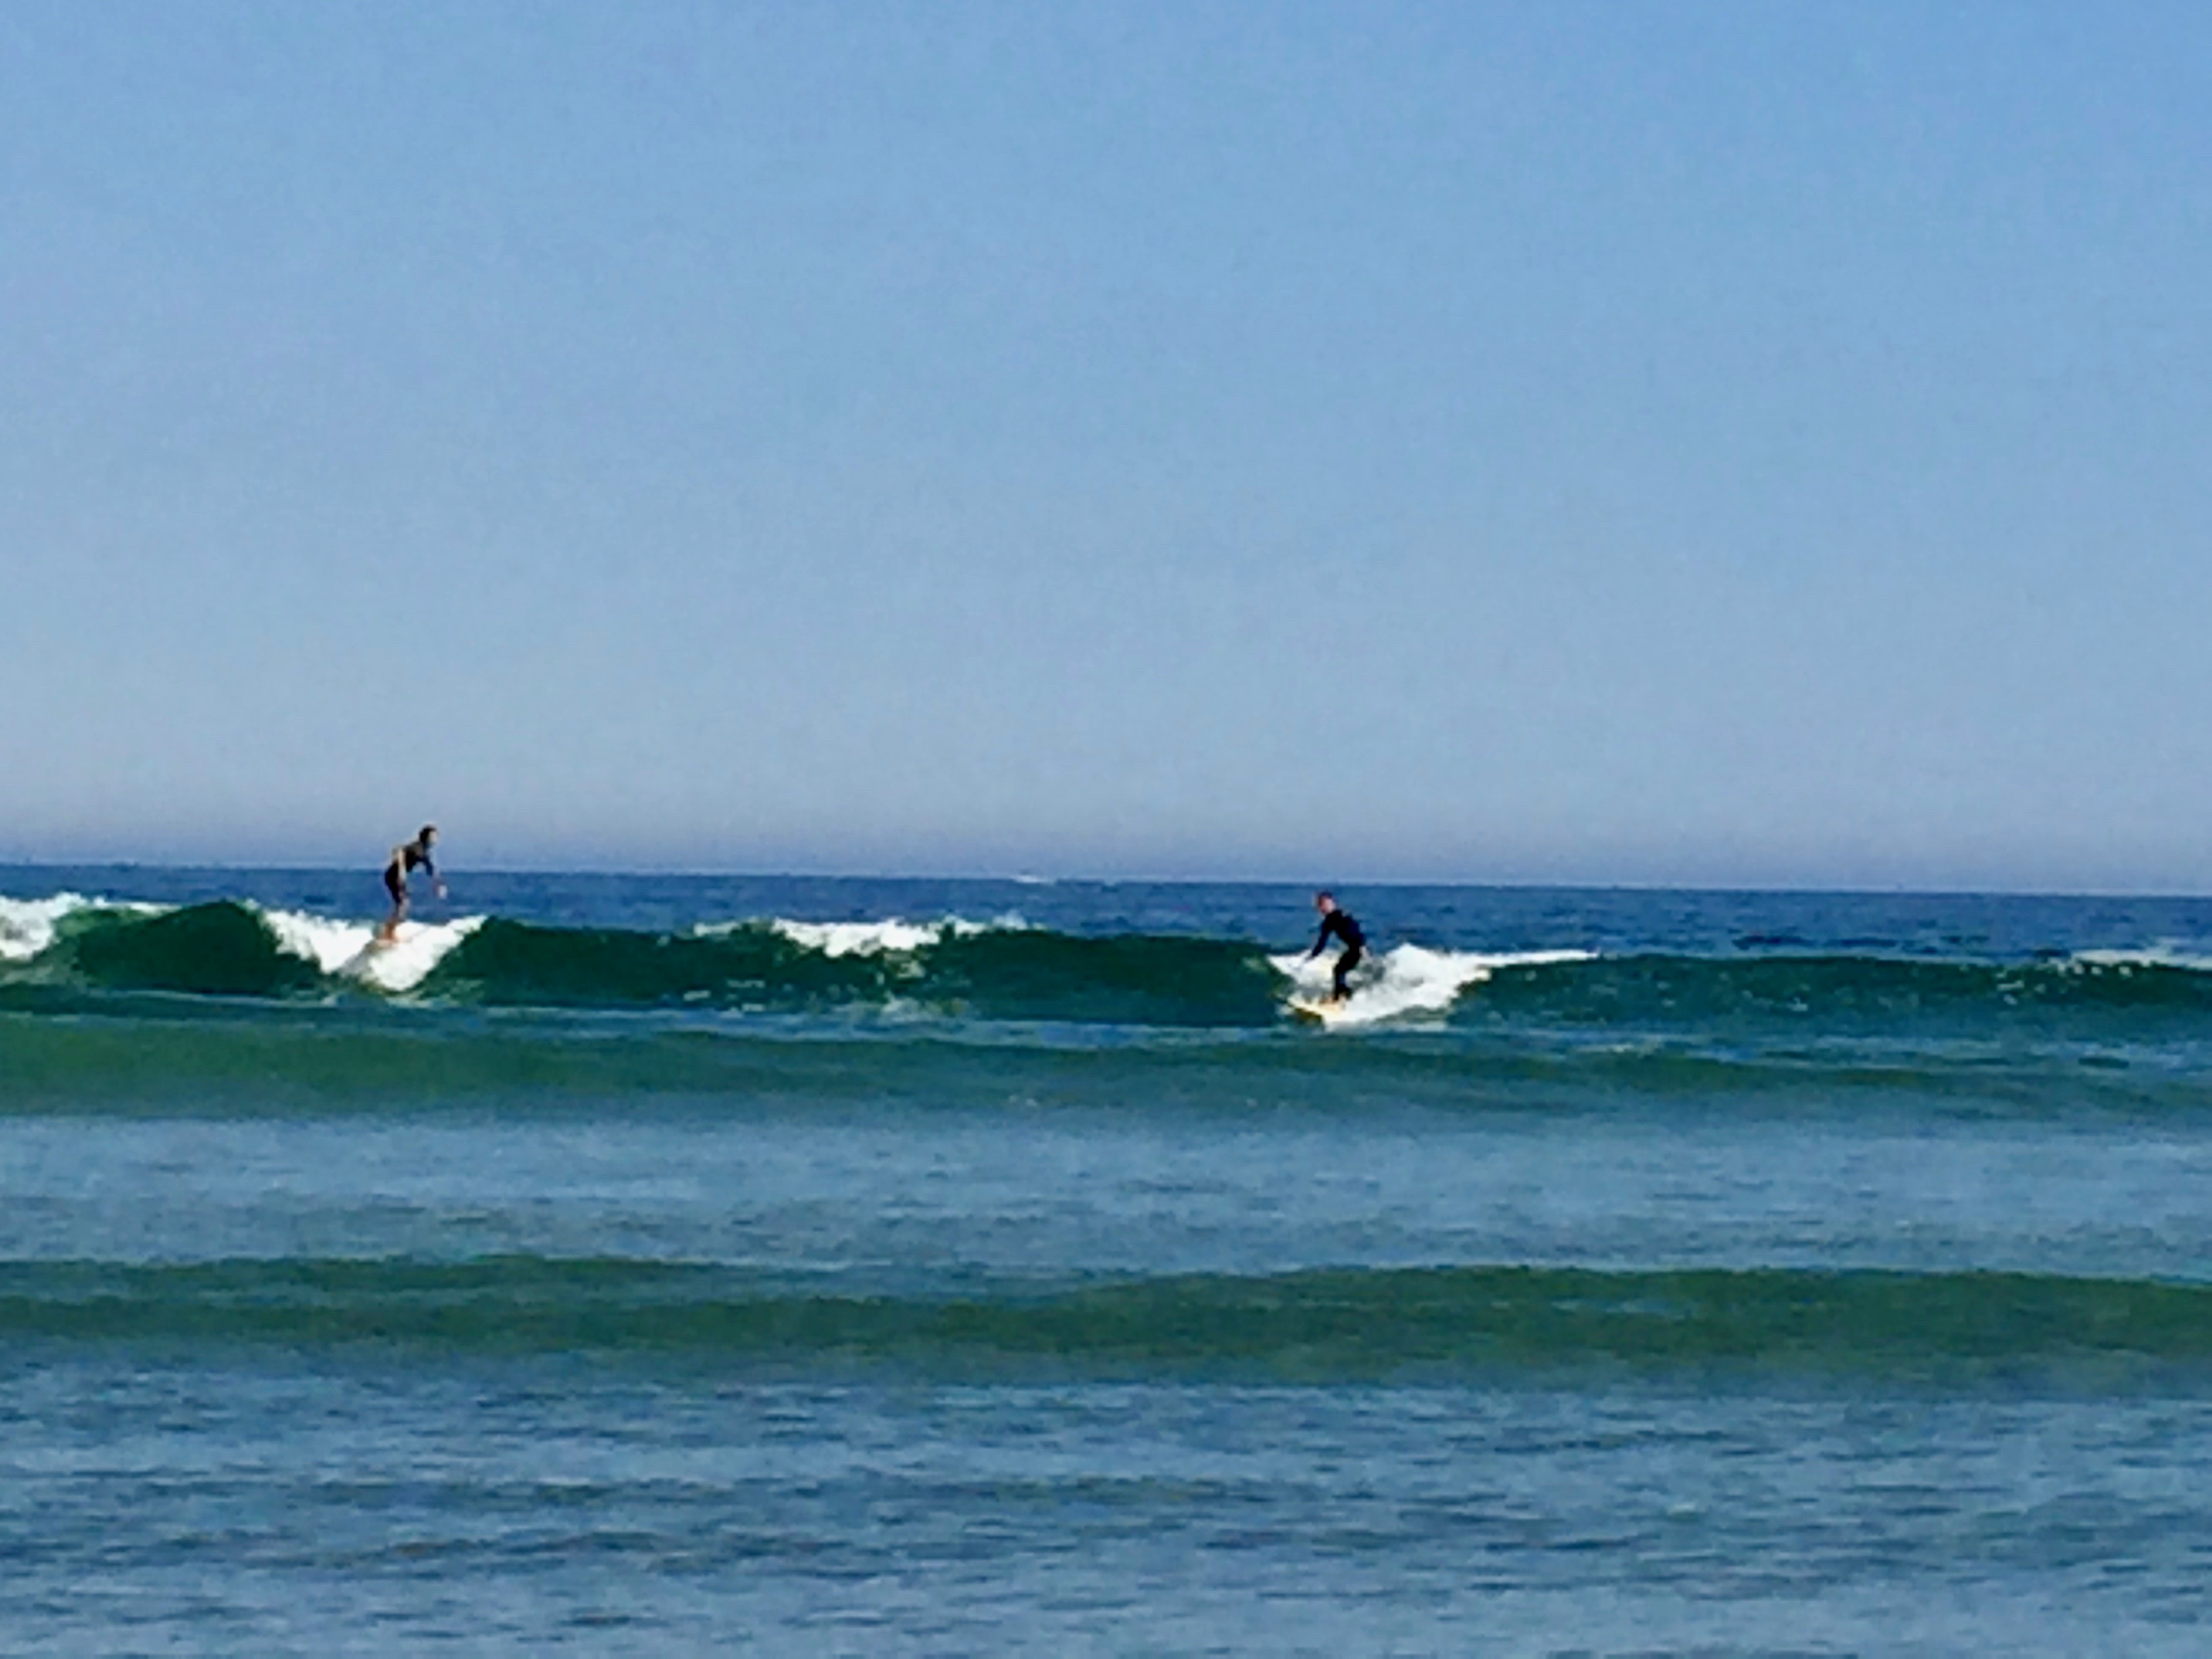 It's the weekend, Number 69. Surfers at Good Harbor Beach, Gloucester MA